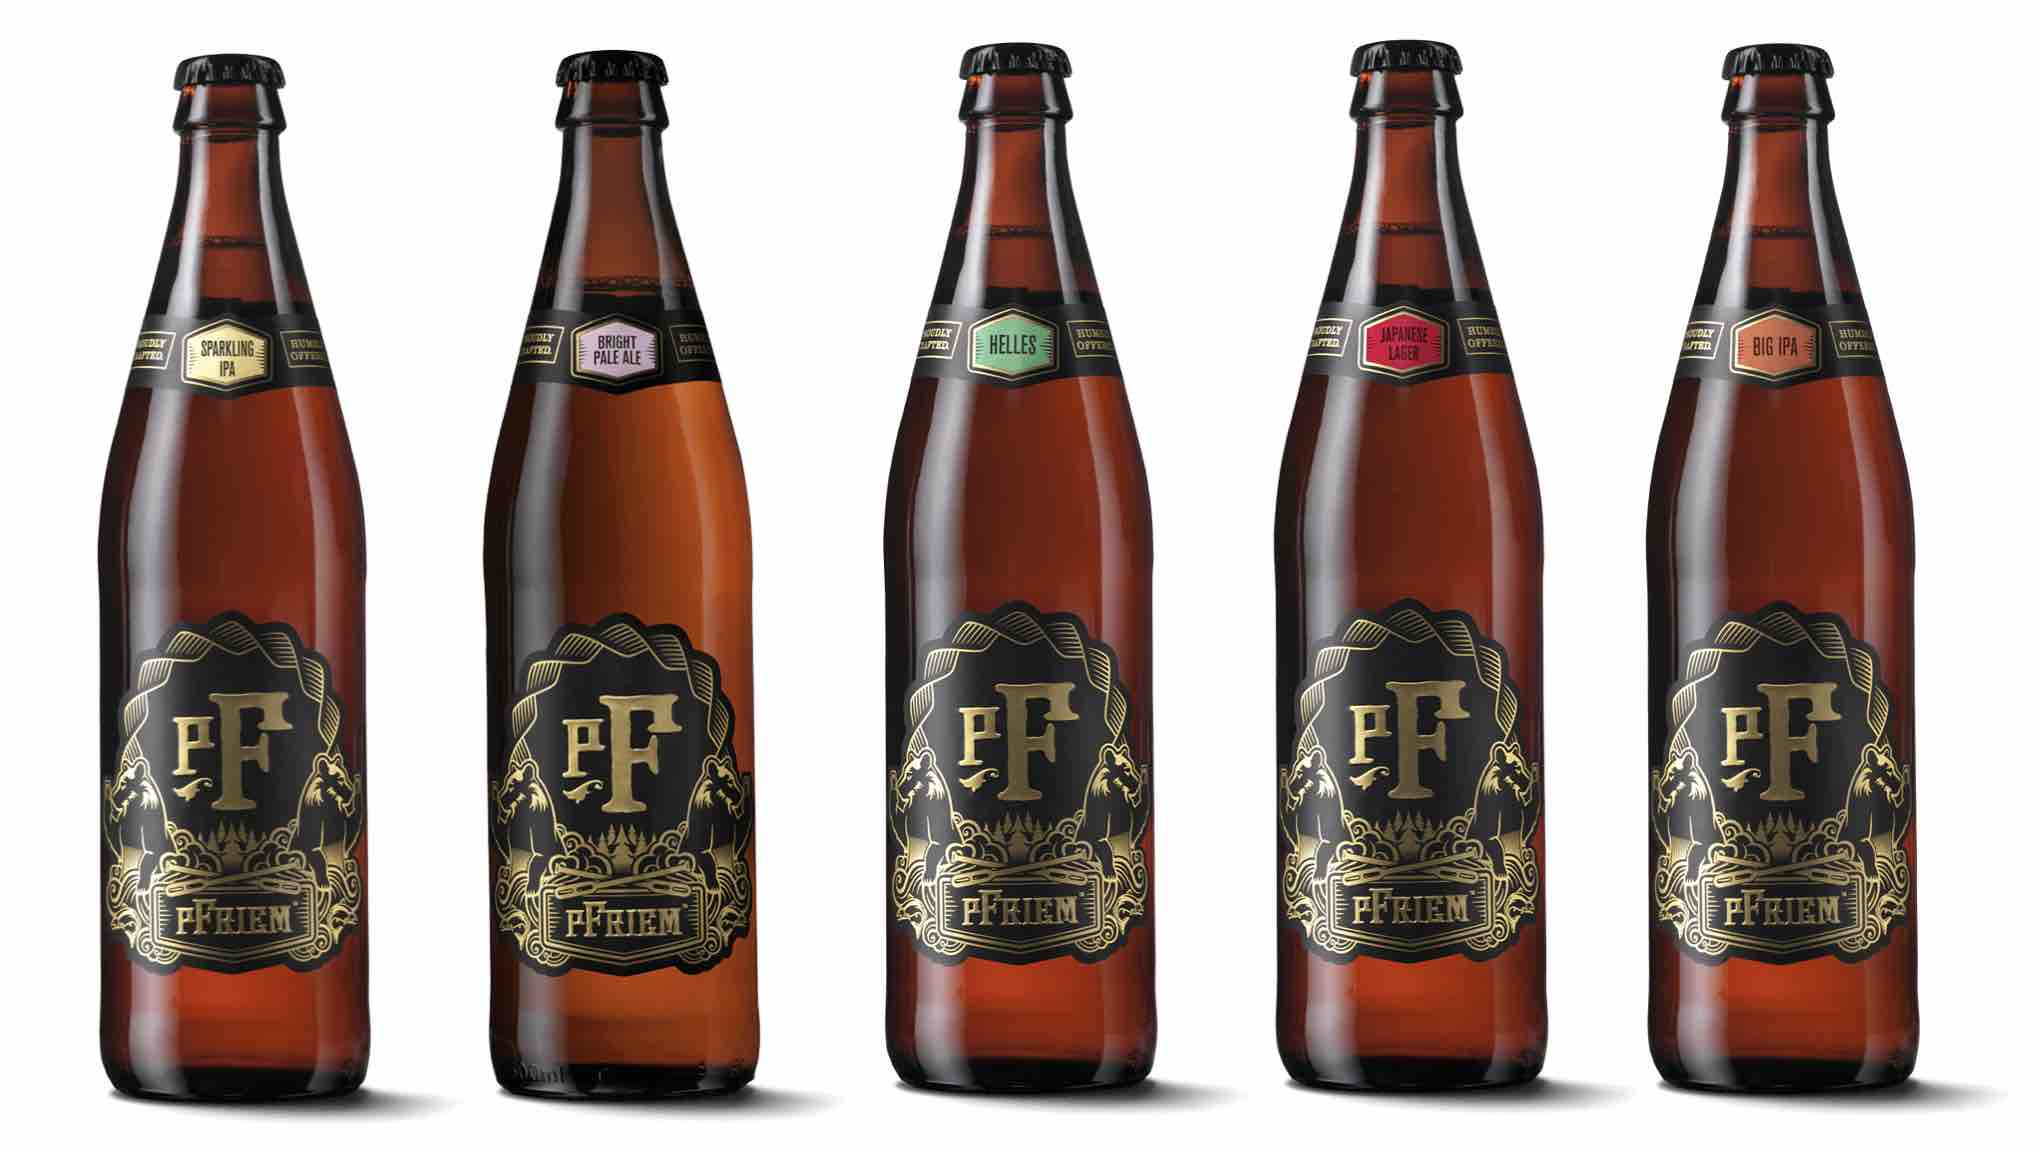 pFriem Family Brewers Spring 2021 Beer Releases - Sparkling IPA, Bright Pale Ale, Helles Lager, Japanese Lager, and Big IPA